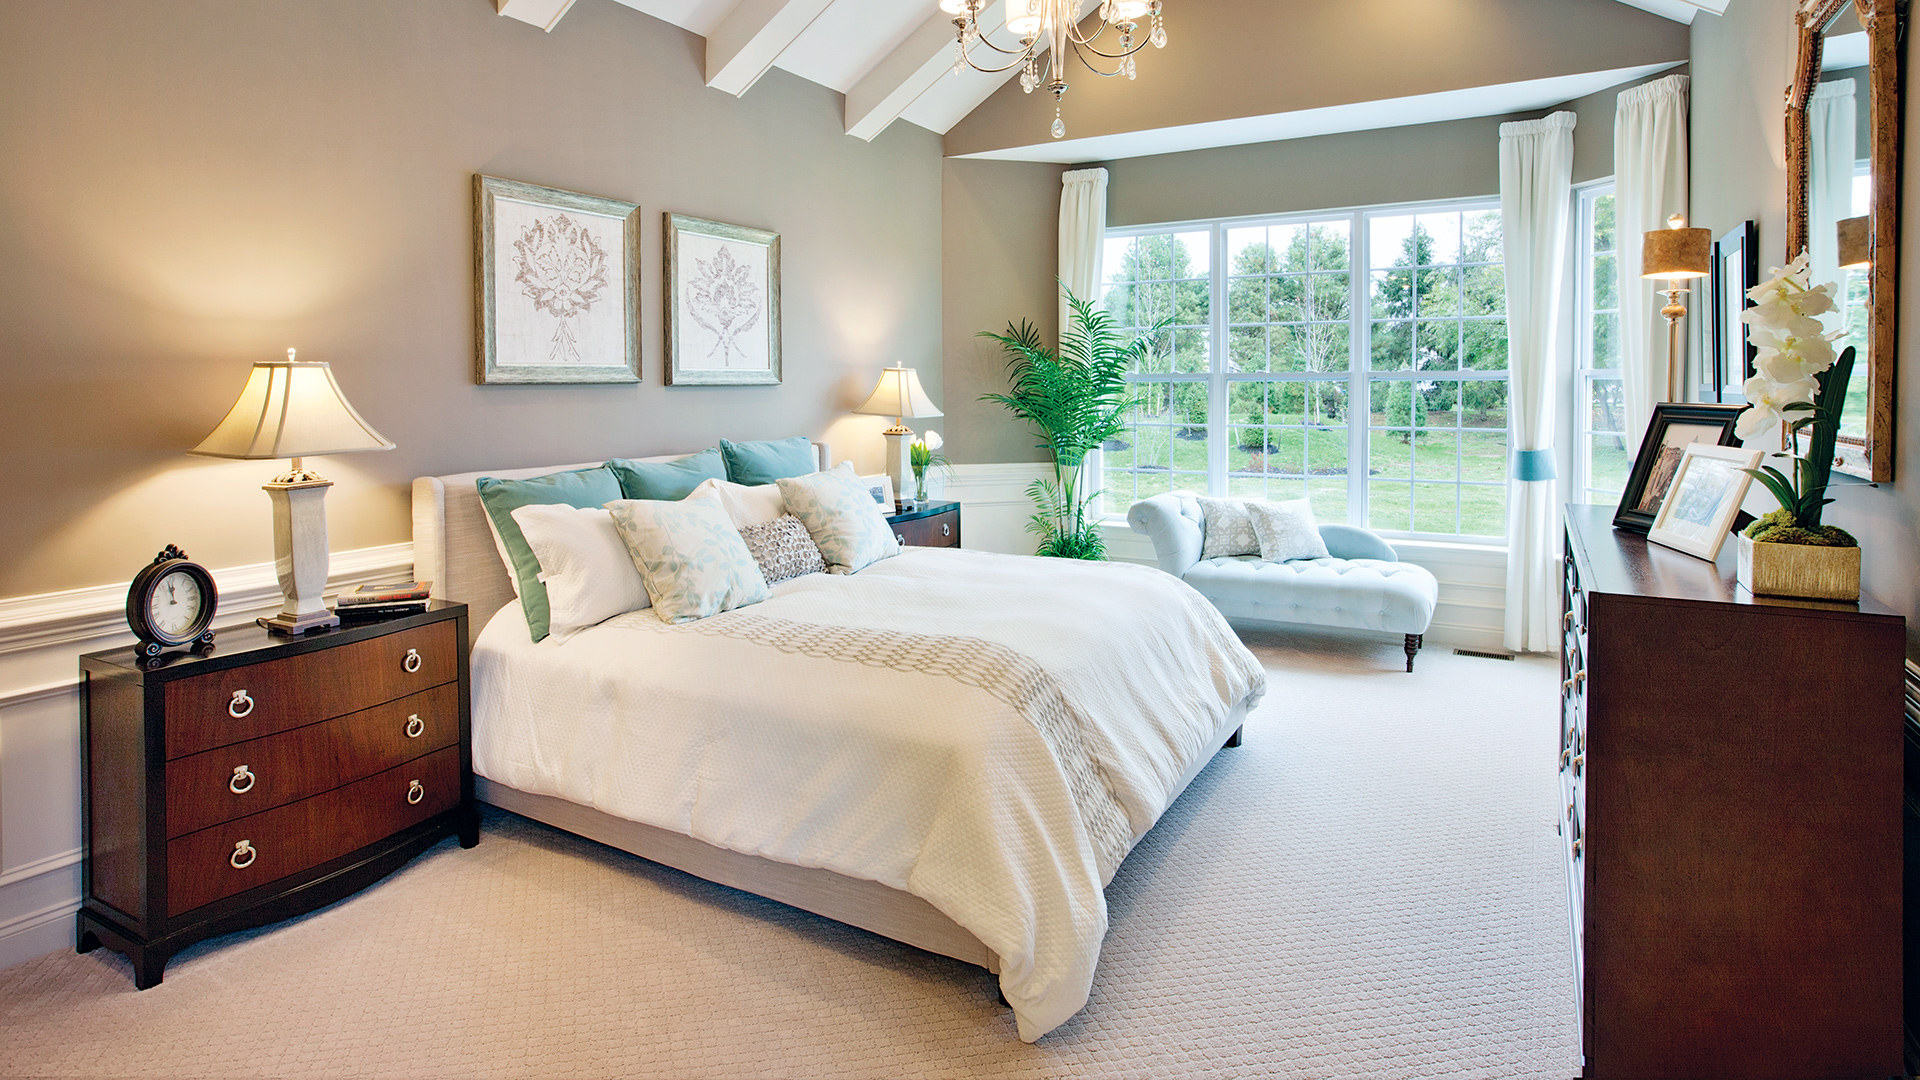 32 Stunning Luxury Master Bedroom Designs Photo Collection: New Luxury Homes For Sale In Scituate, MA